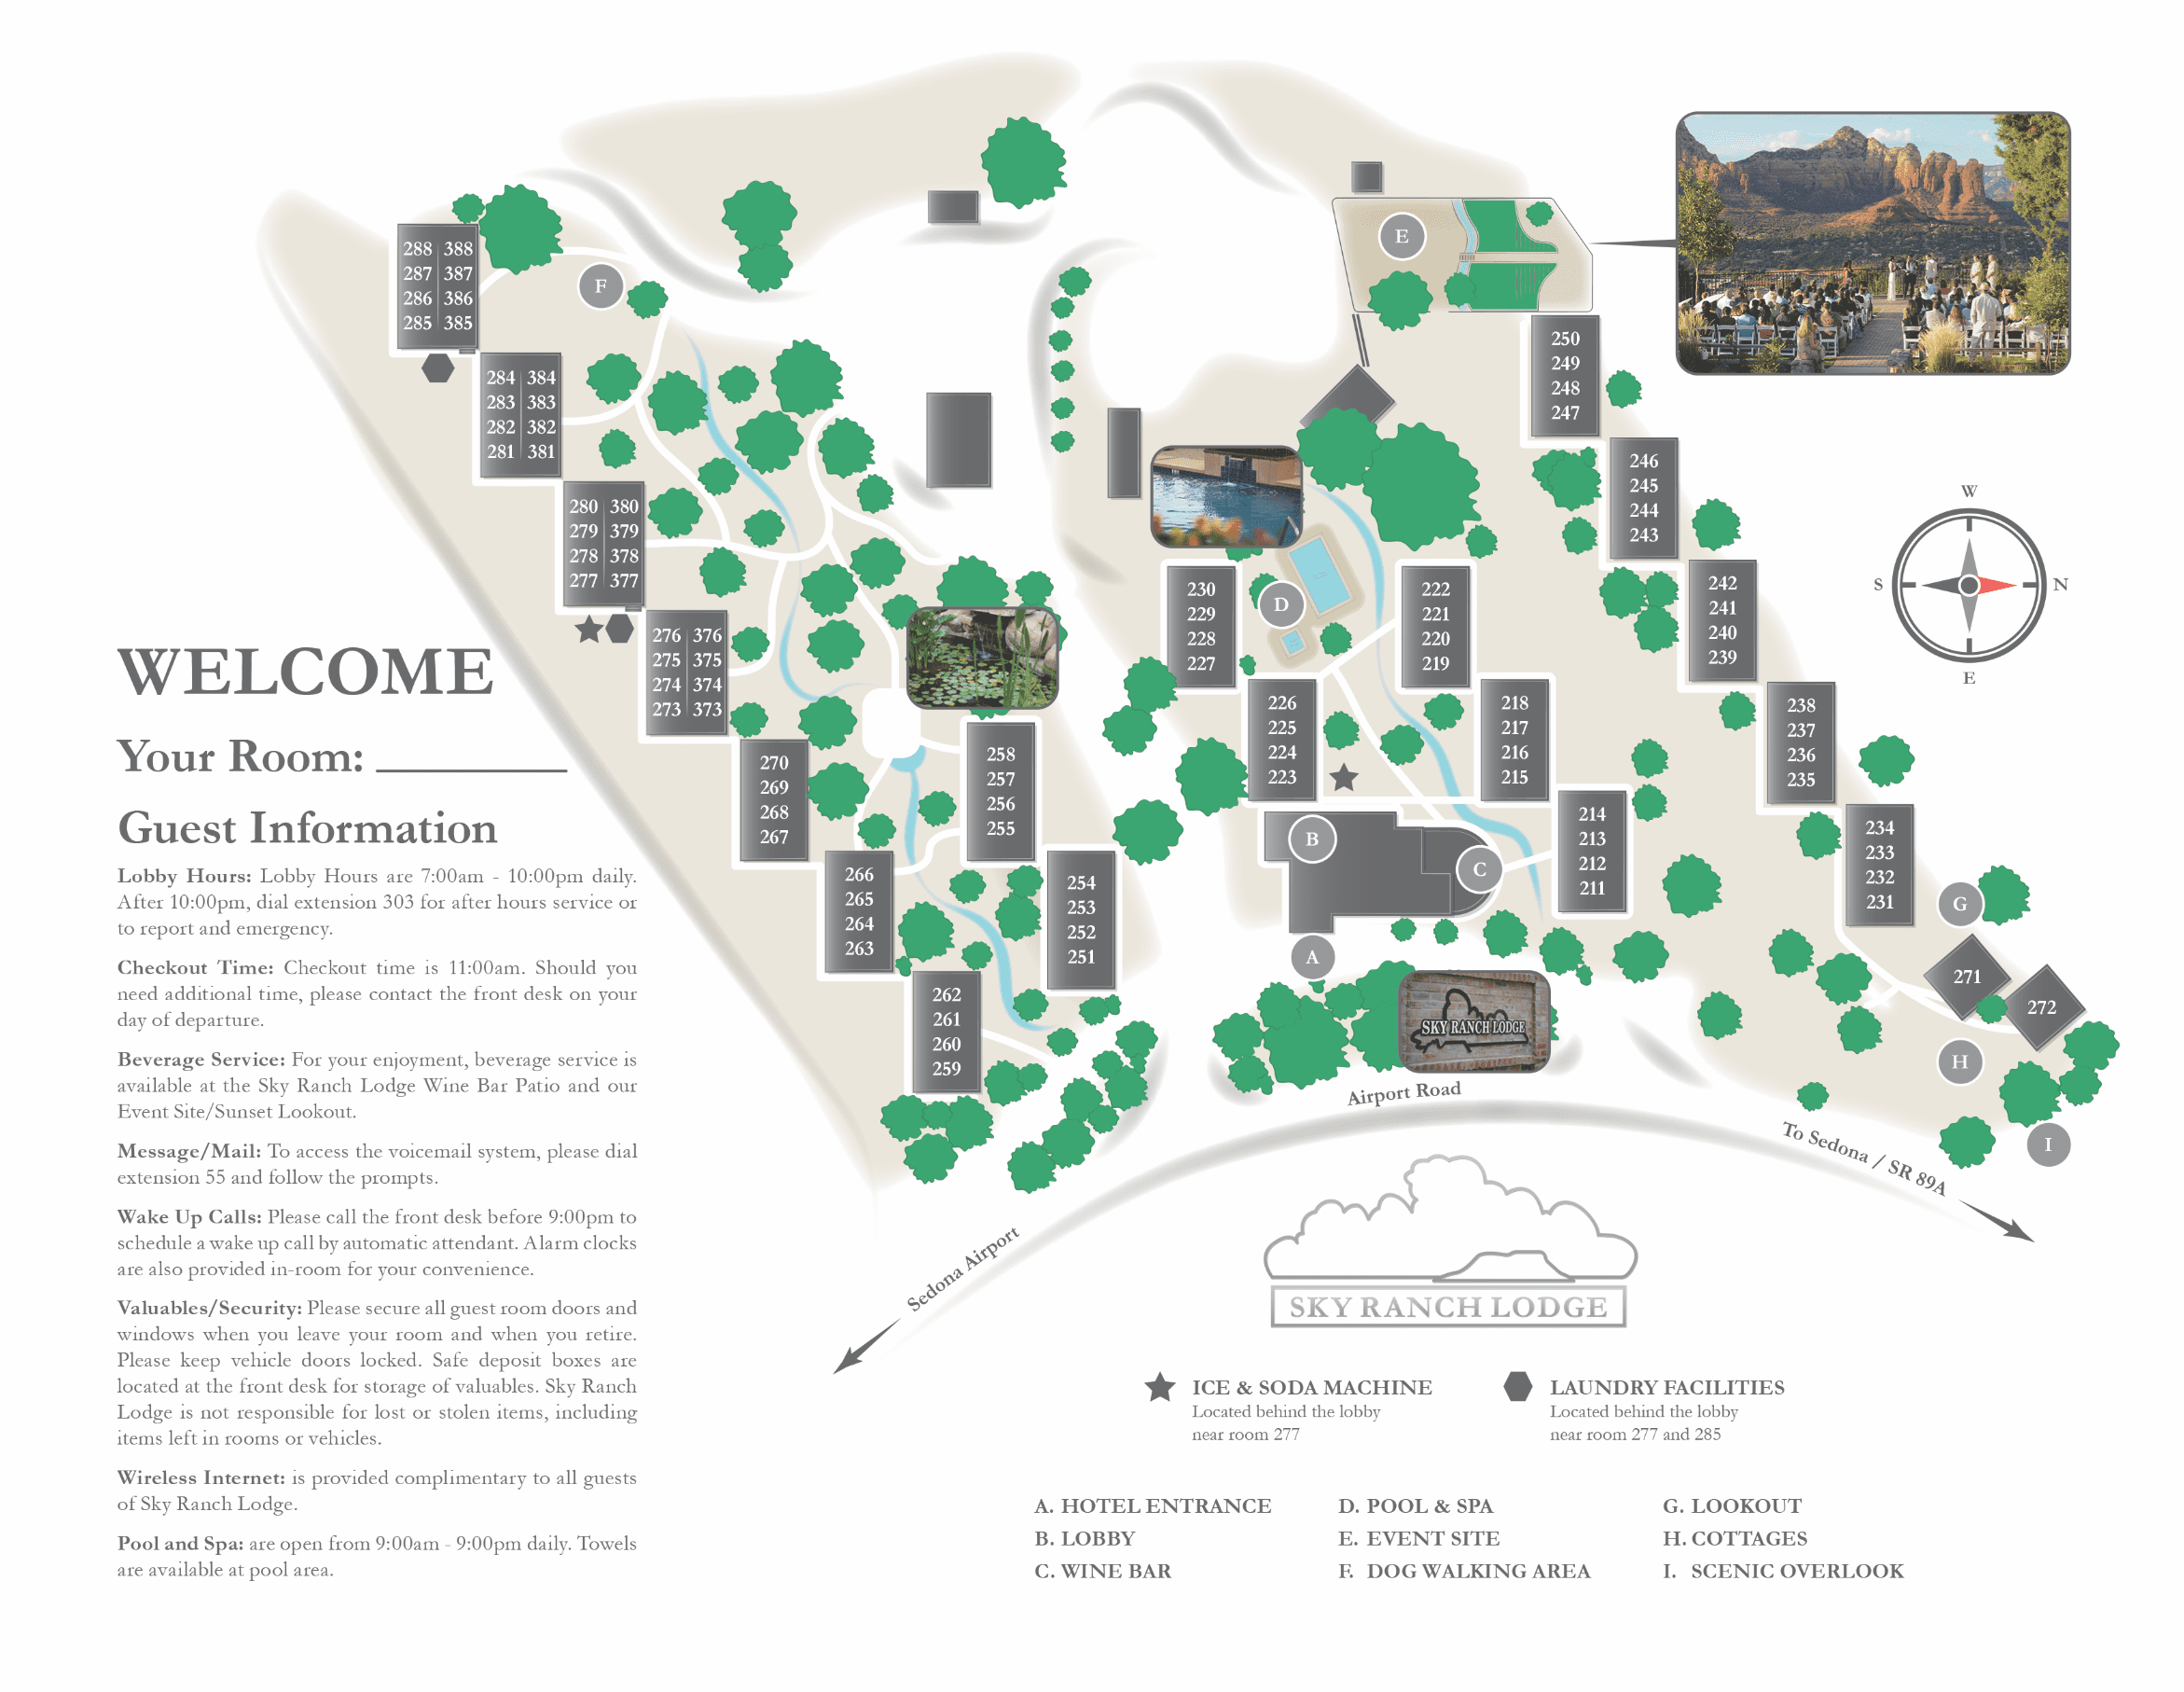 Sedona Sky Ranch Lodge Property Map